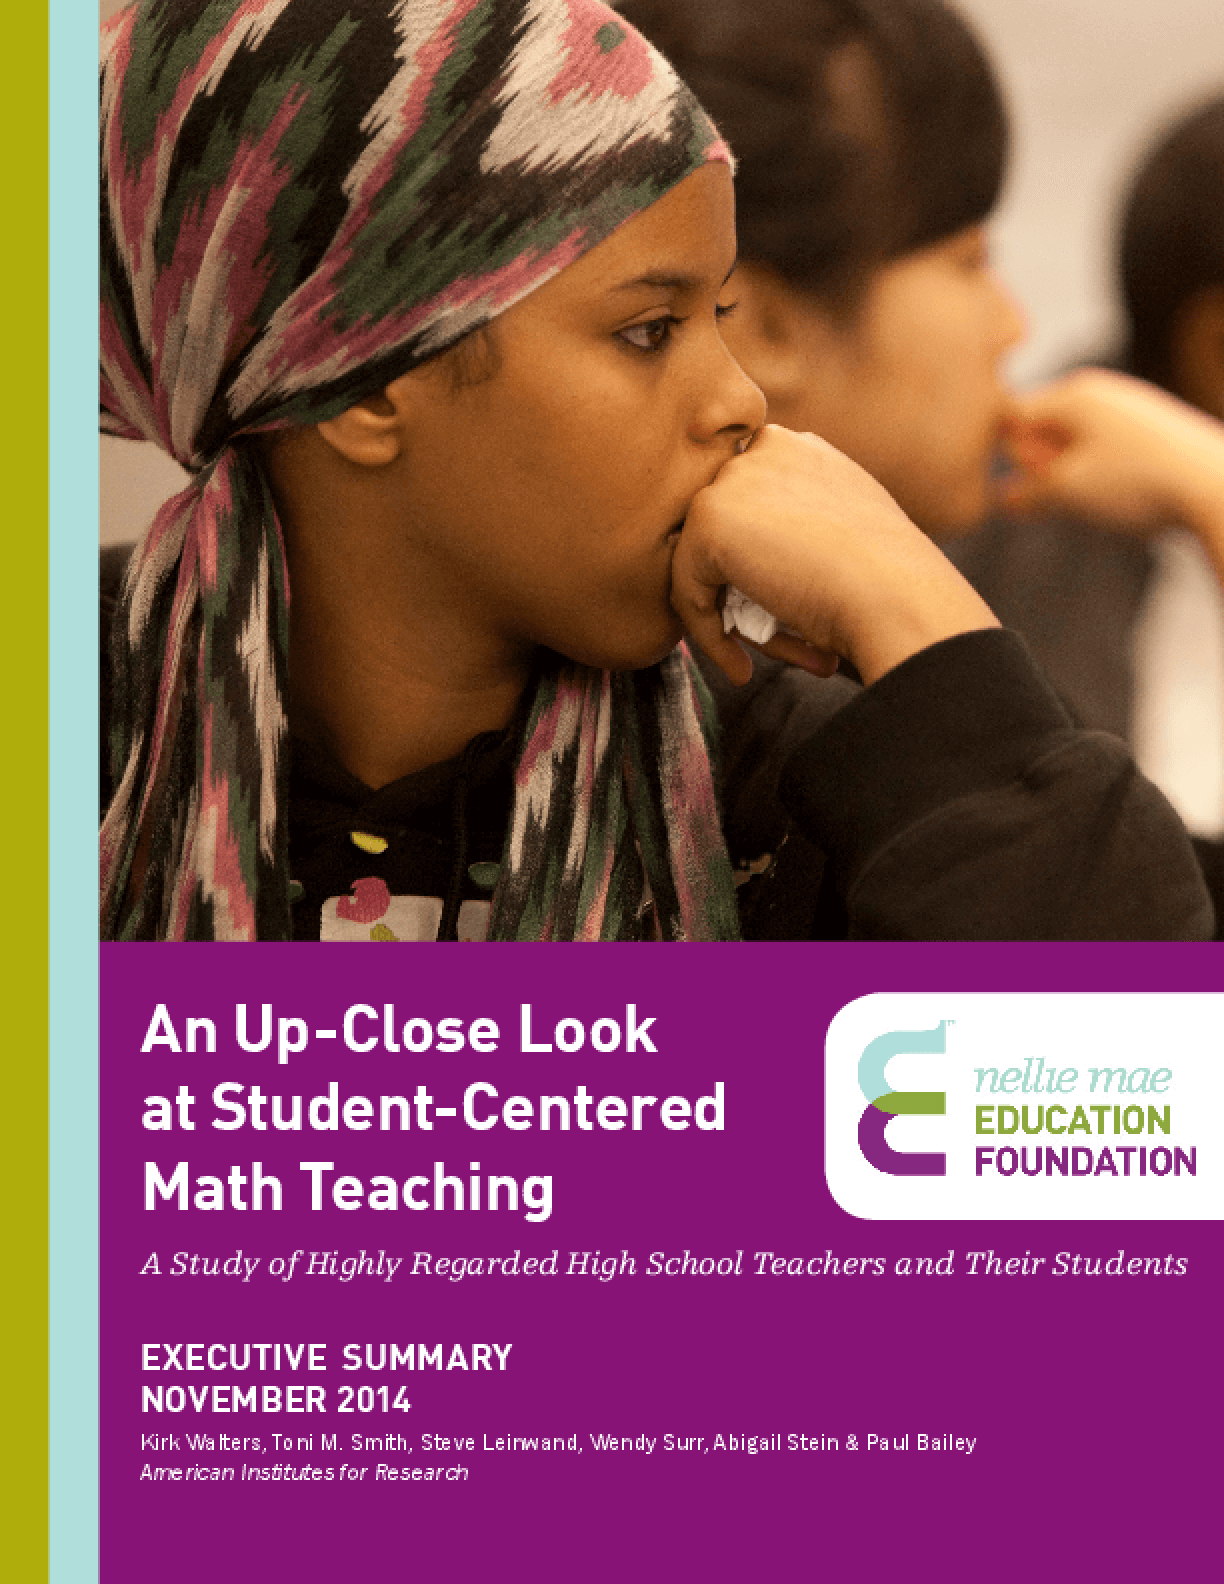 An Up-Close Look at Student-Centered Math Teaching: A Study of Highly Regarded High School Teachers and Their Students - Executive Summary